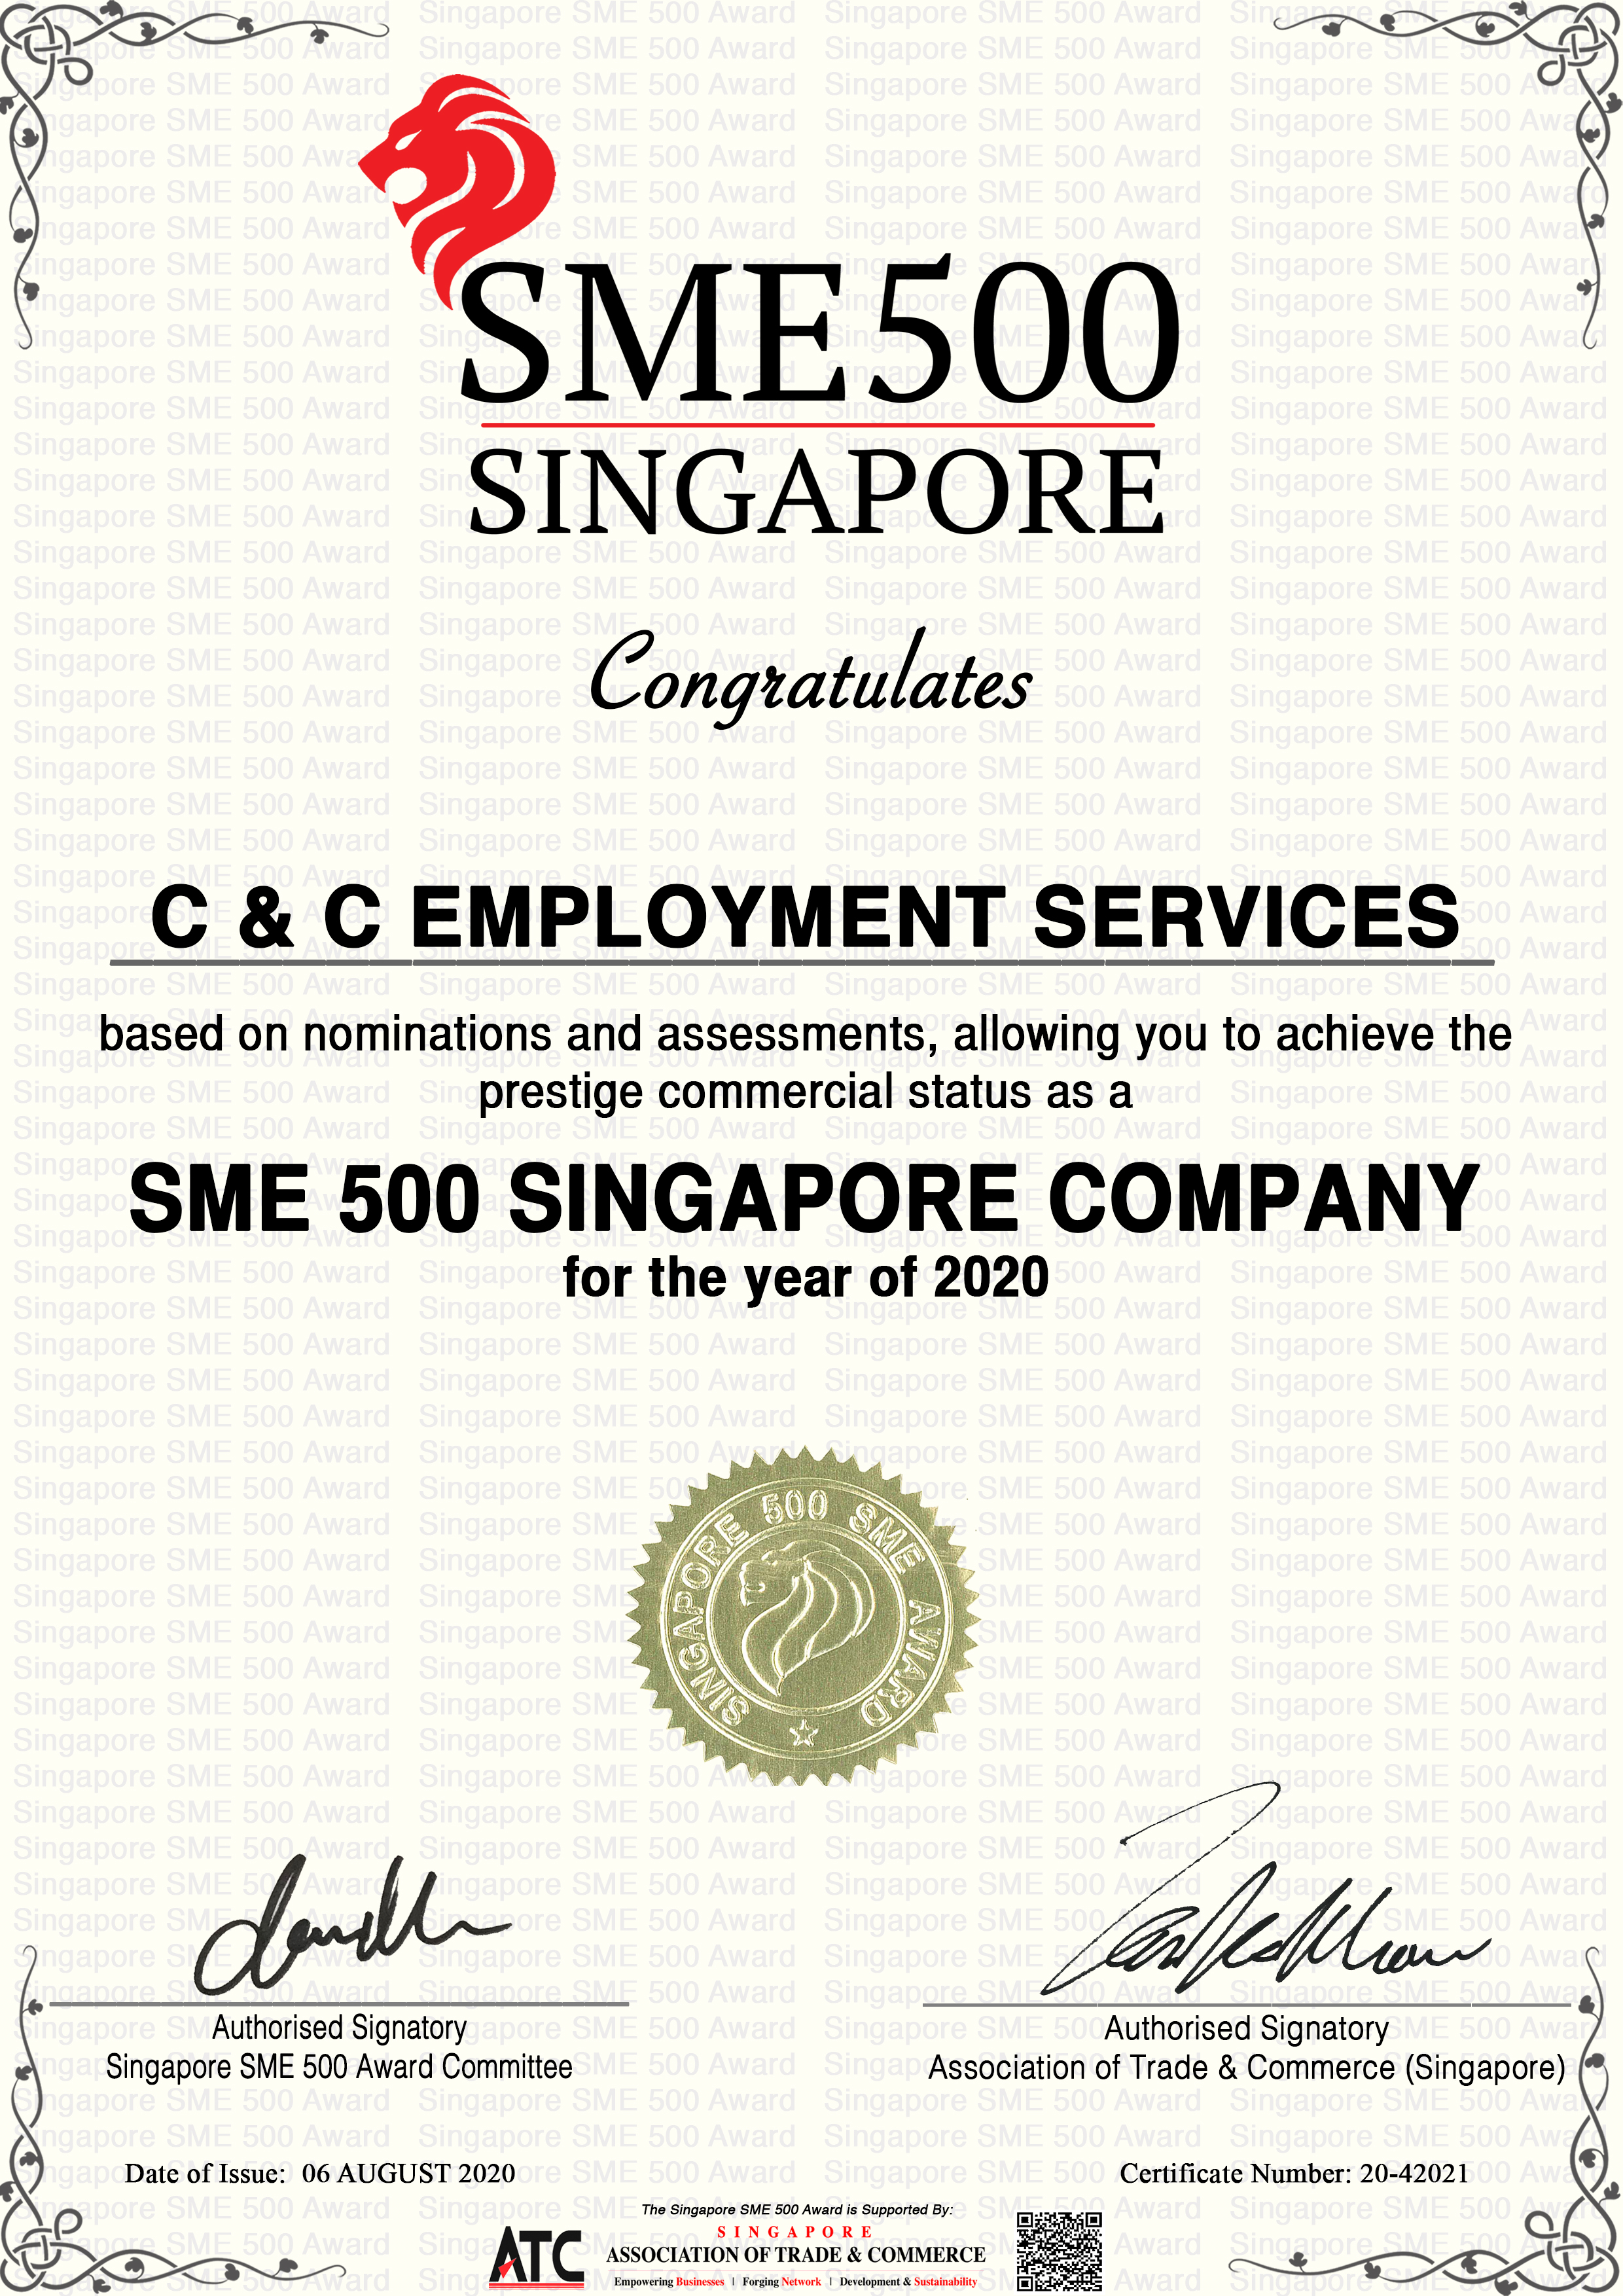 THE SINGAPORE SME 500 AWARD